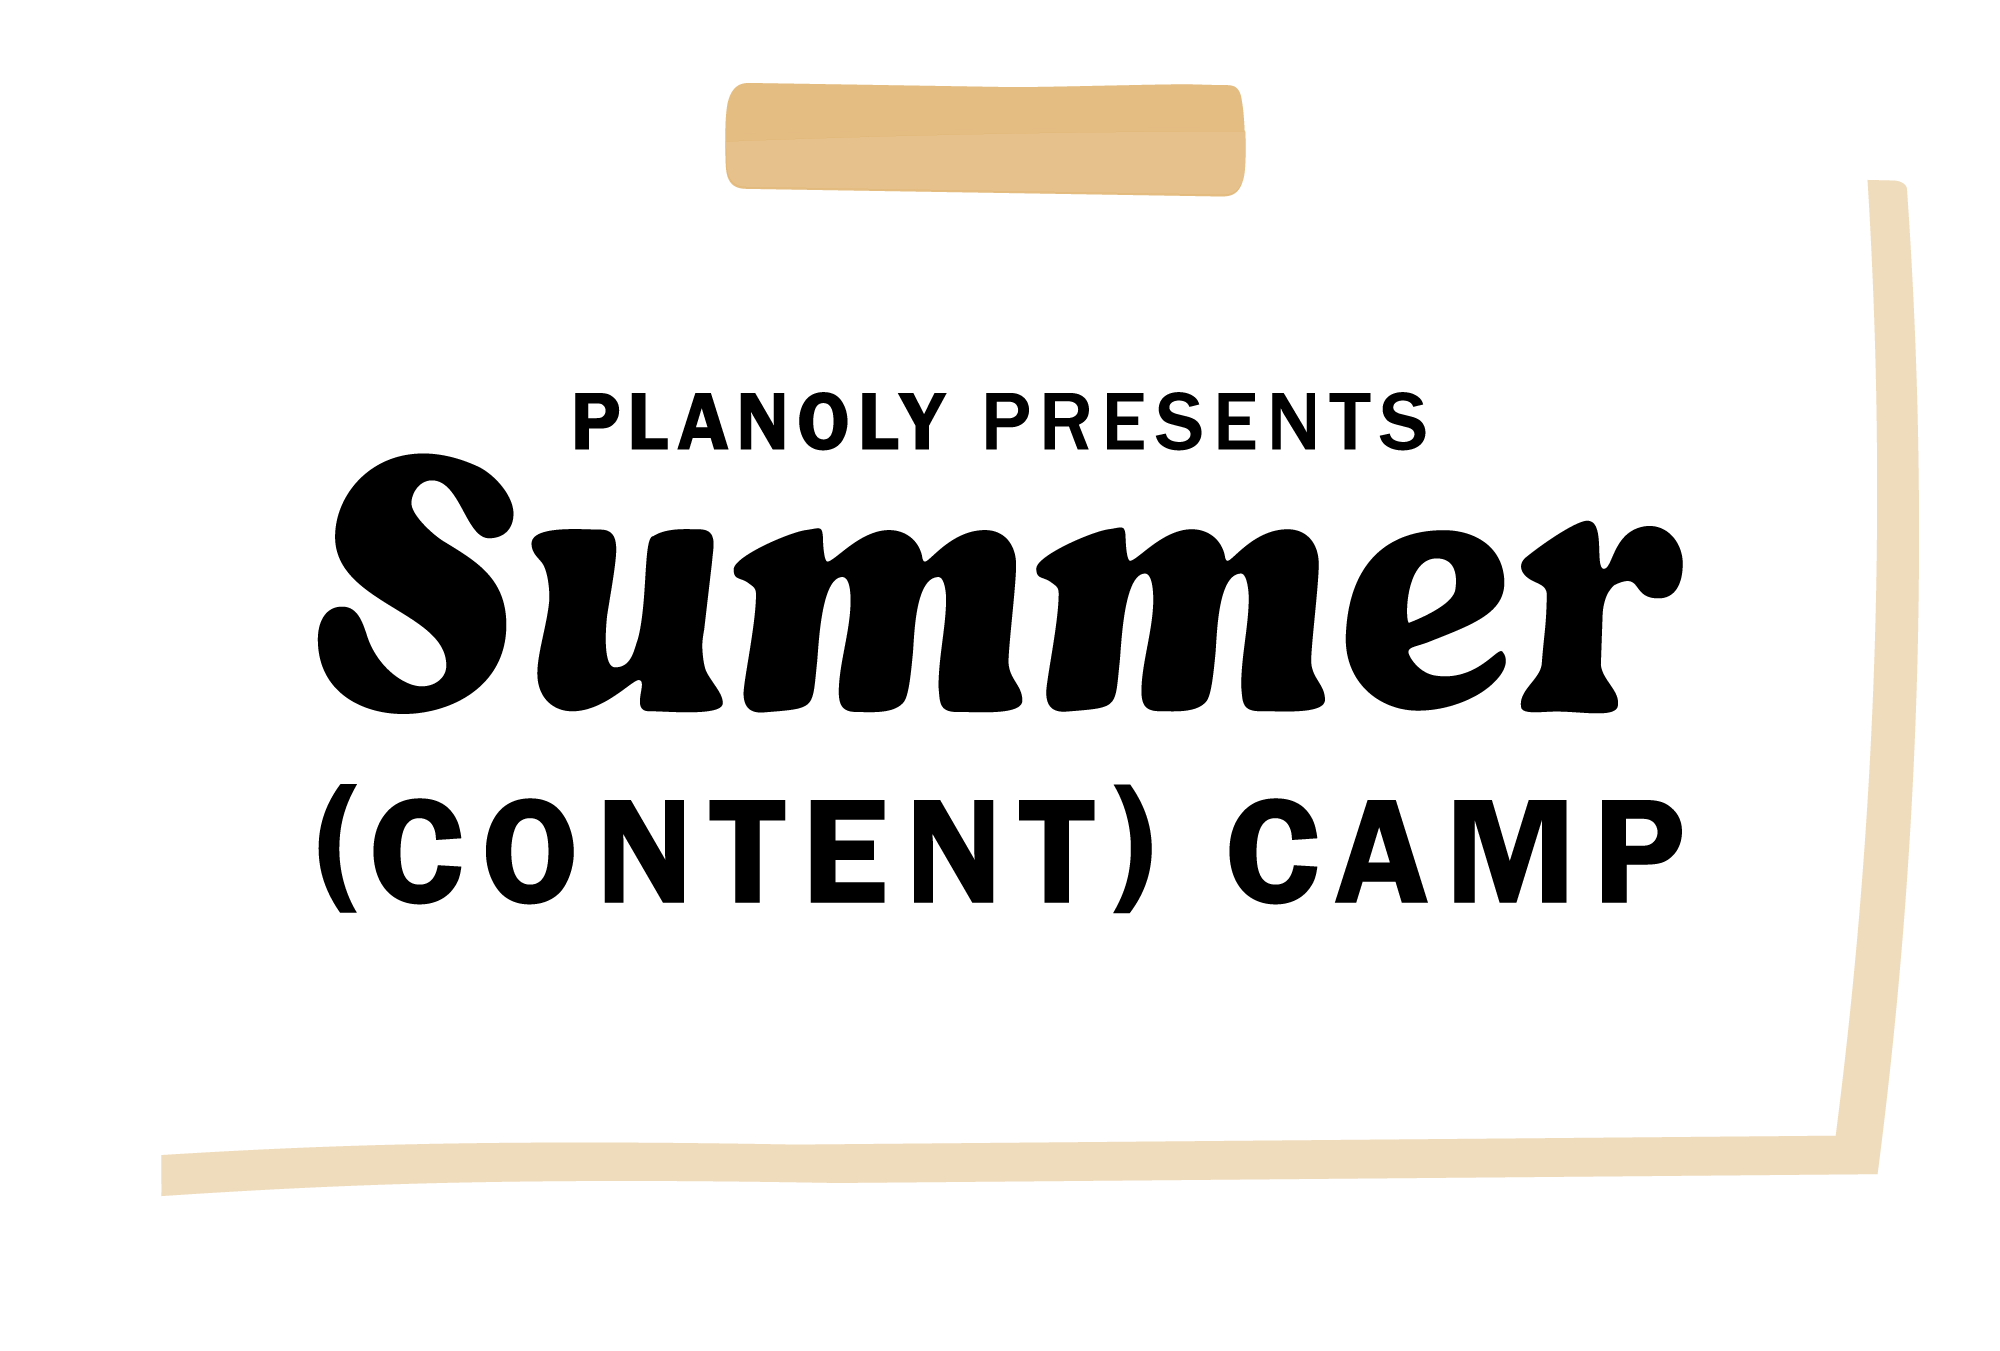 PLANOLY-Presents-Summer-Content-Camp-Logo-on-Postit